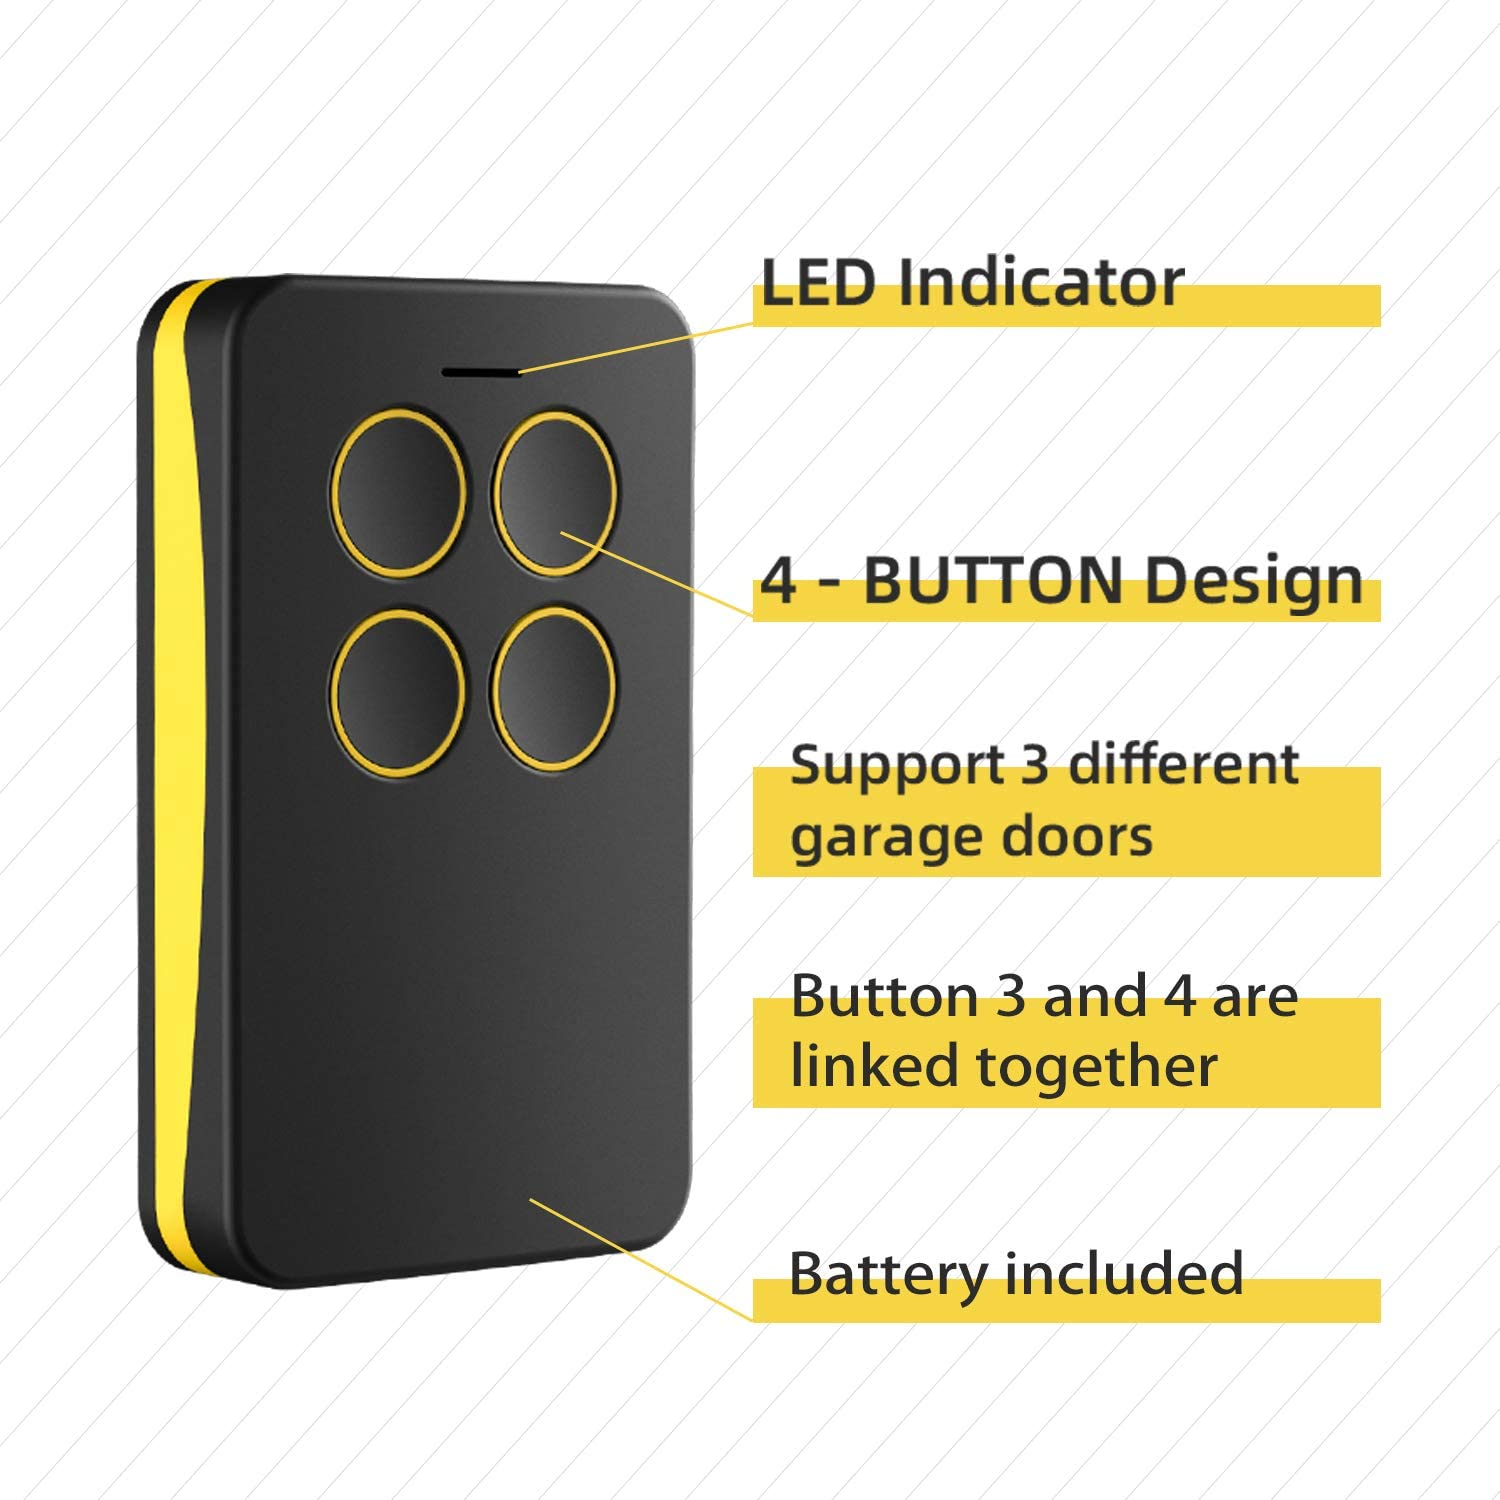 Compatible Garage Door 891lm 893lm 950estd 953estd Remote Control With Yellow Learn Button Liftmaster Chamberlain Craftsman